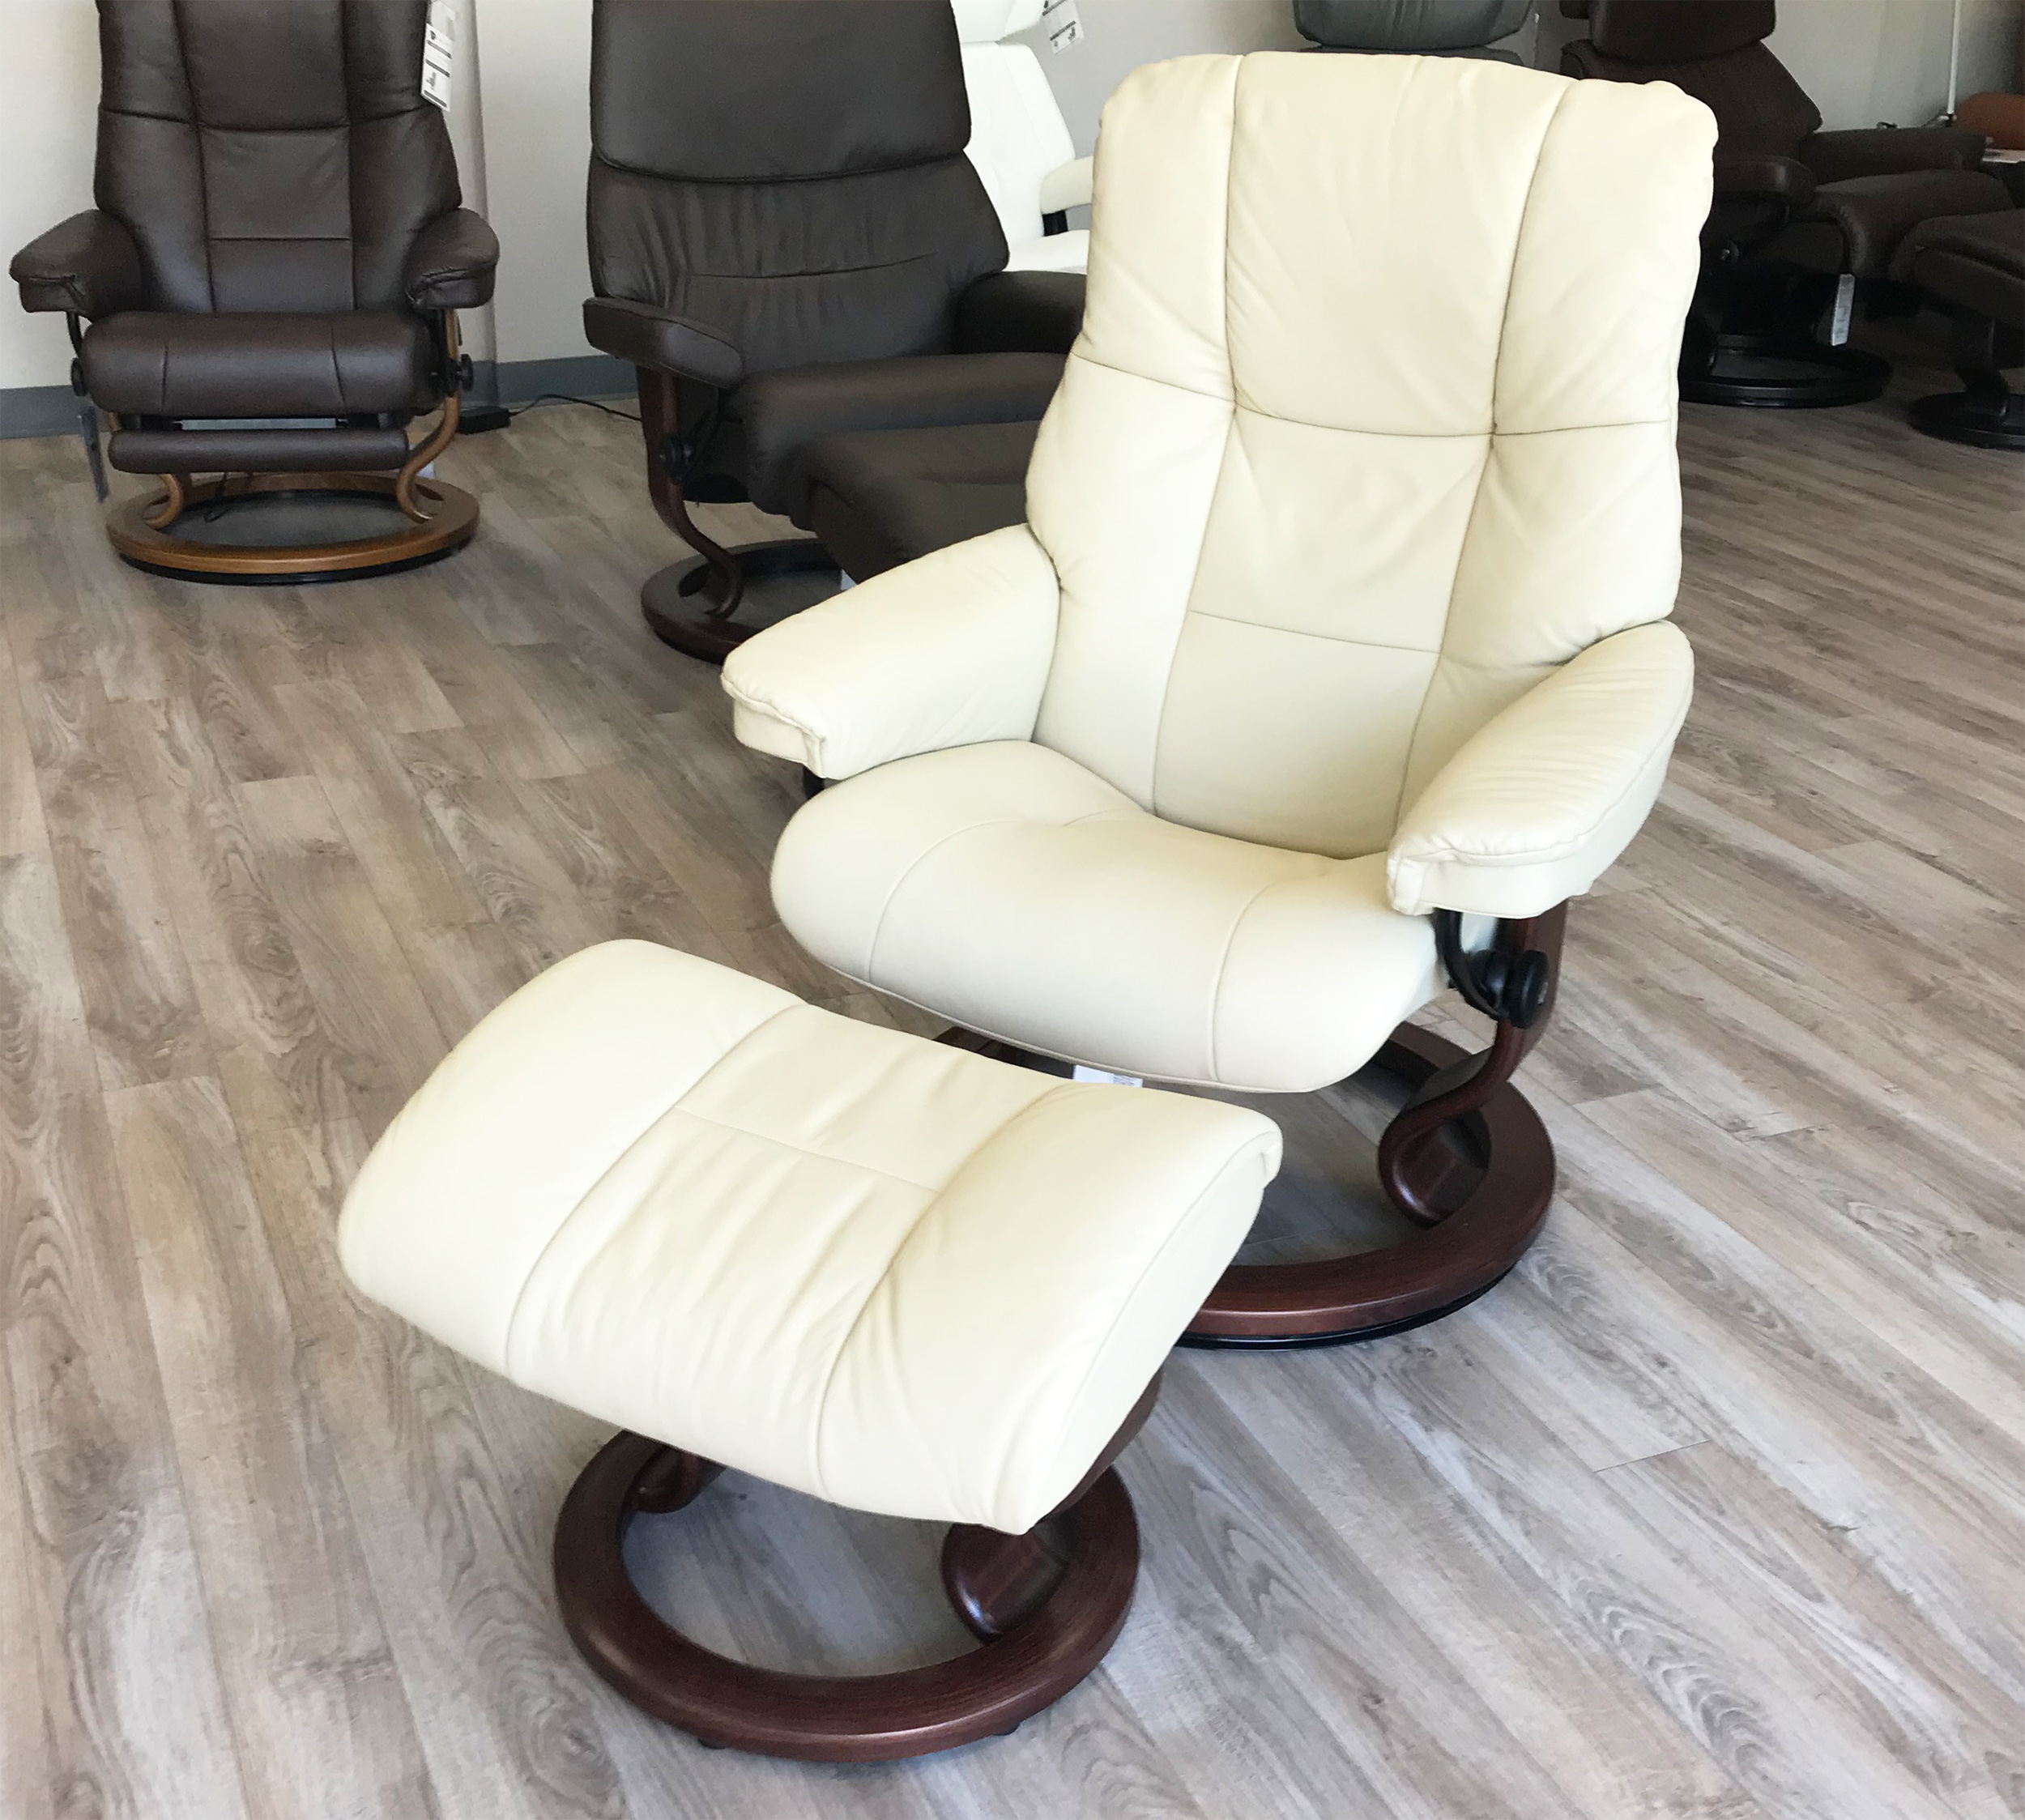 chair recliner restwell riser dallas main